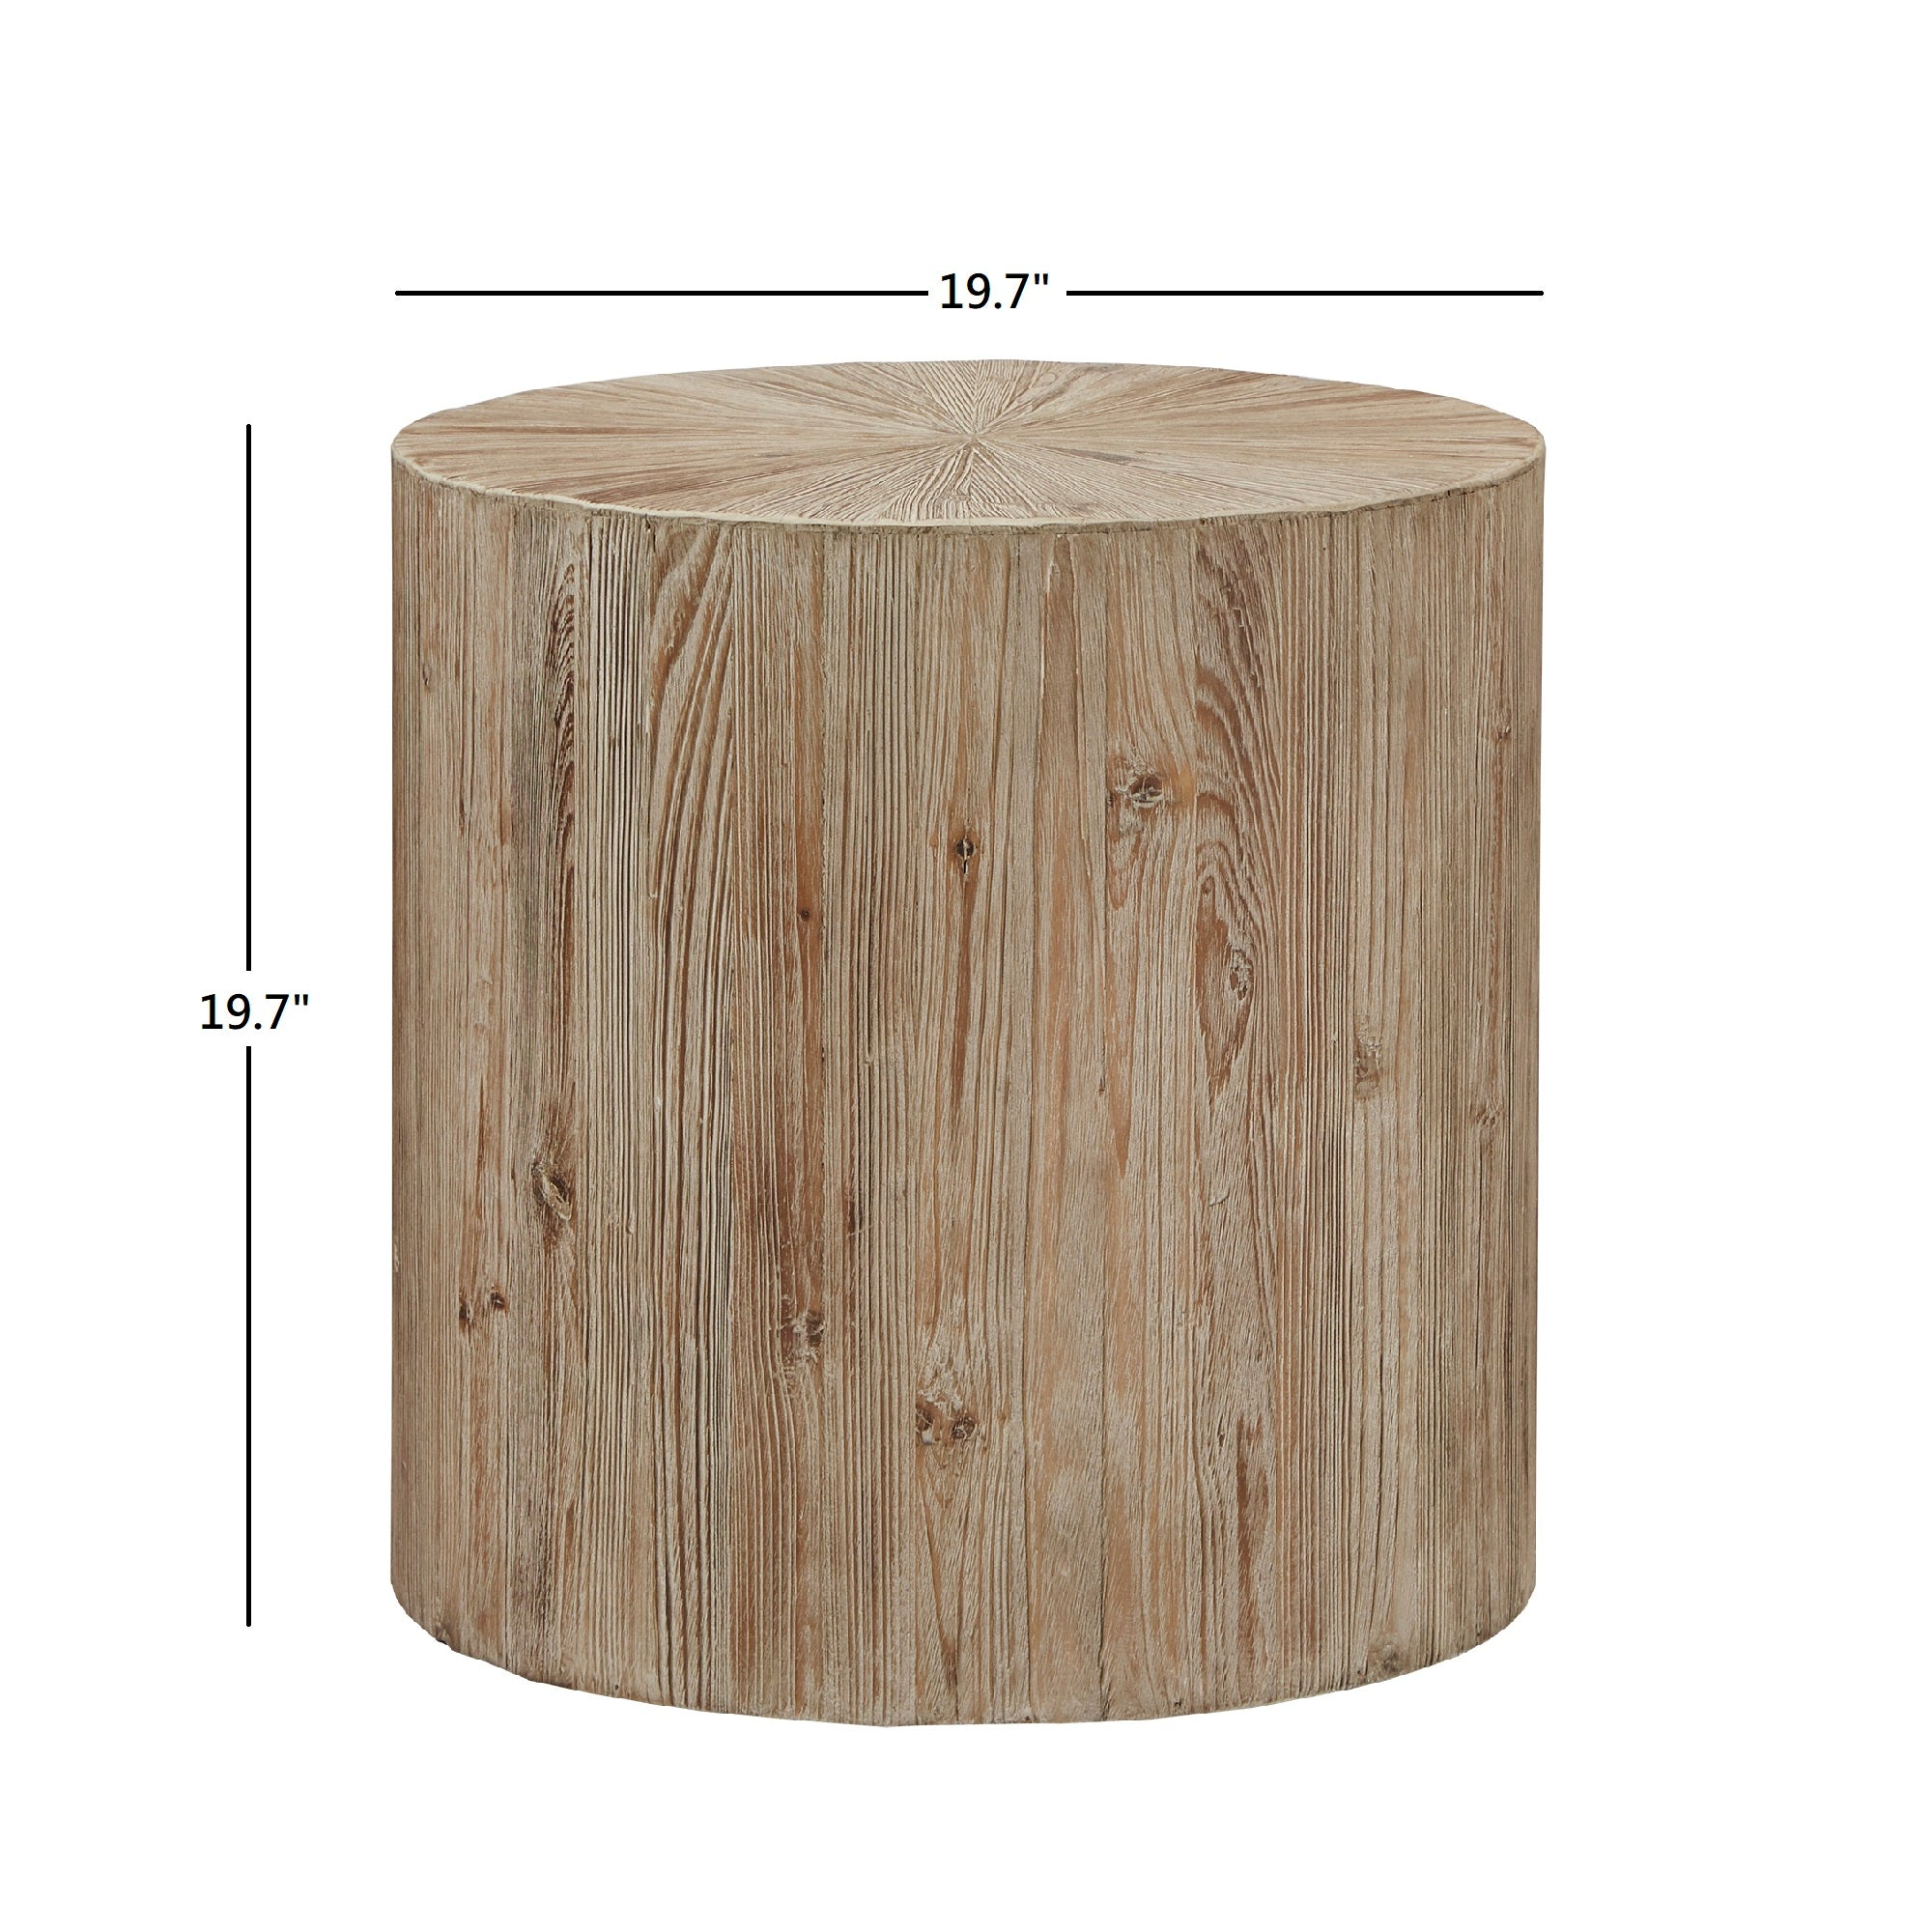 Distressed Reclaimed Wood Cylindrical End Table